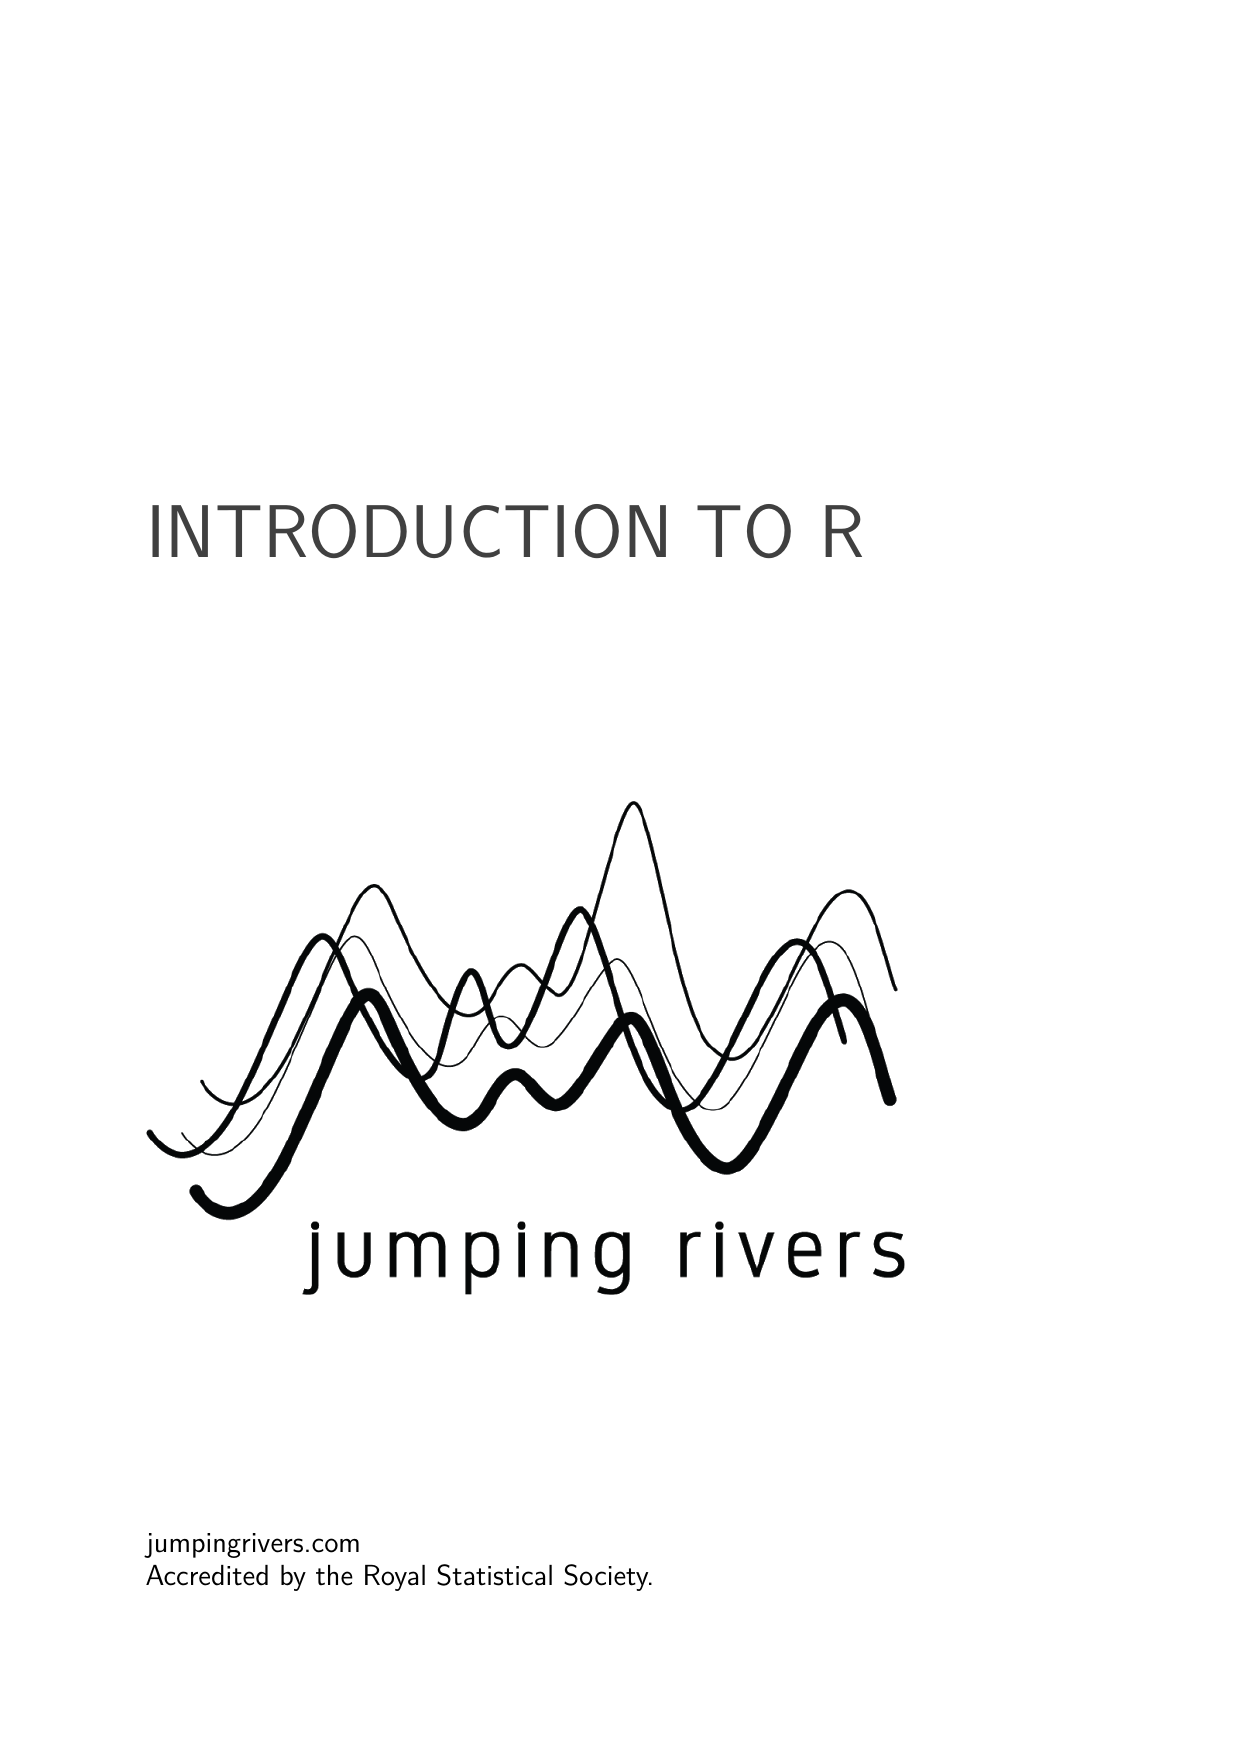 Example course material for 'Introduction to R'